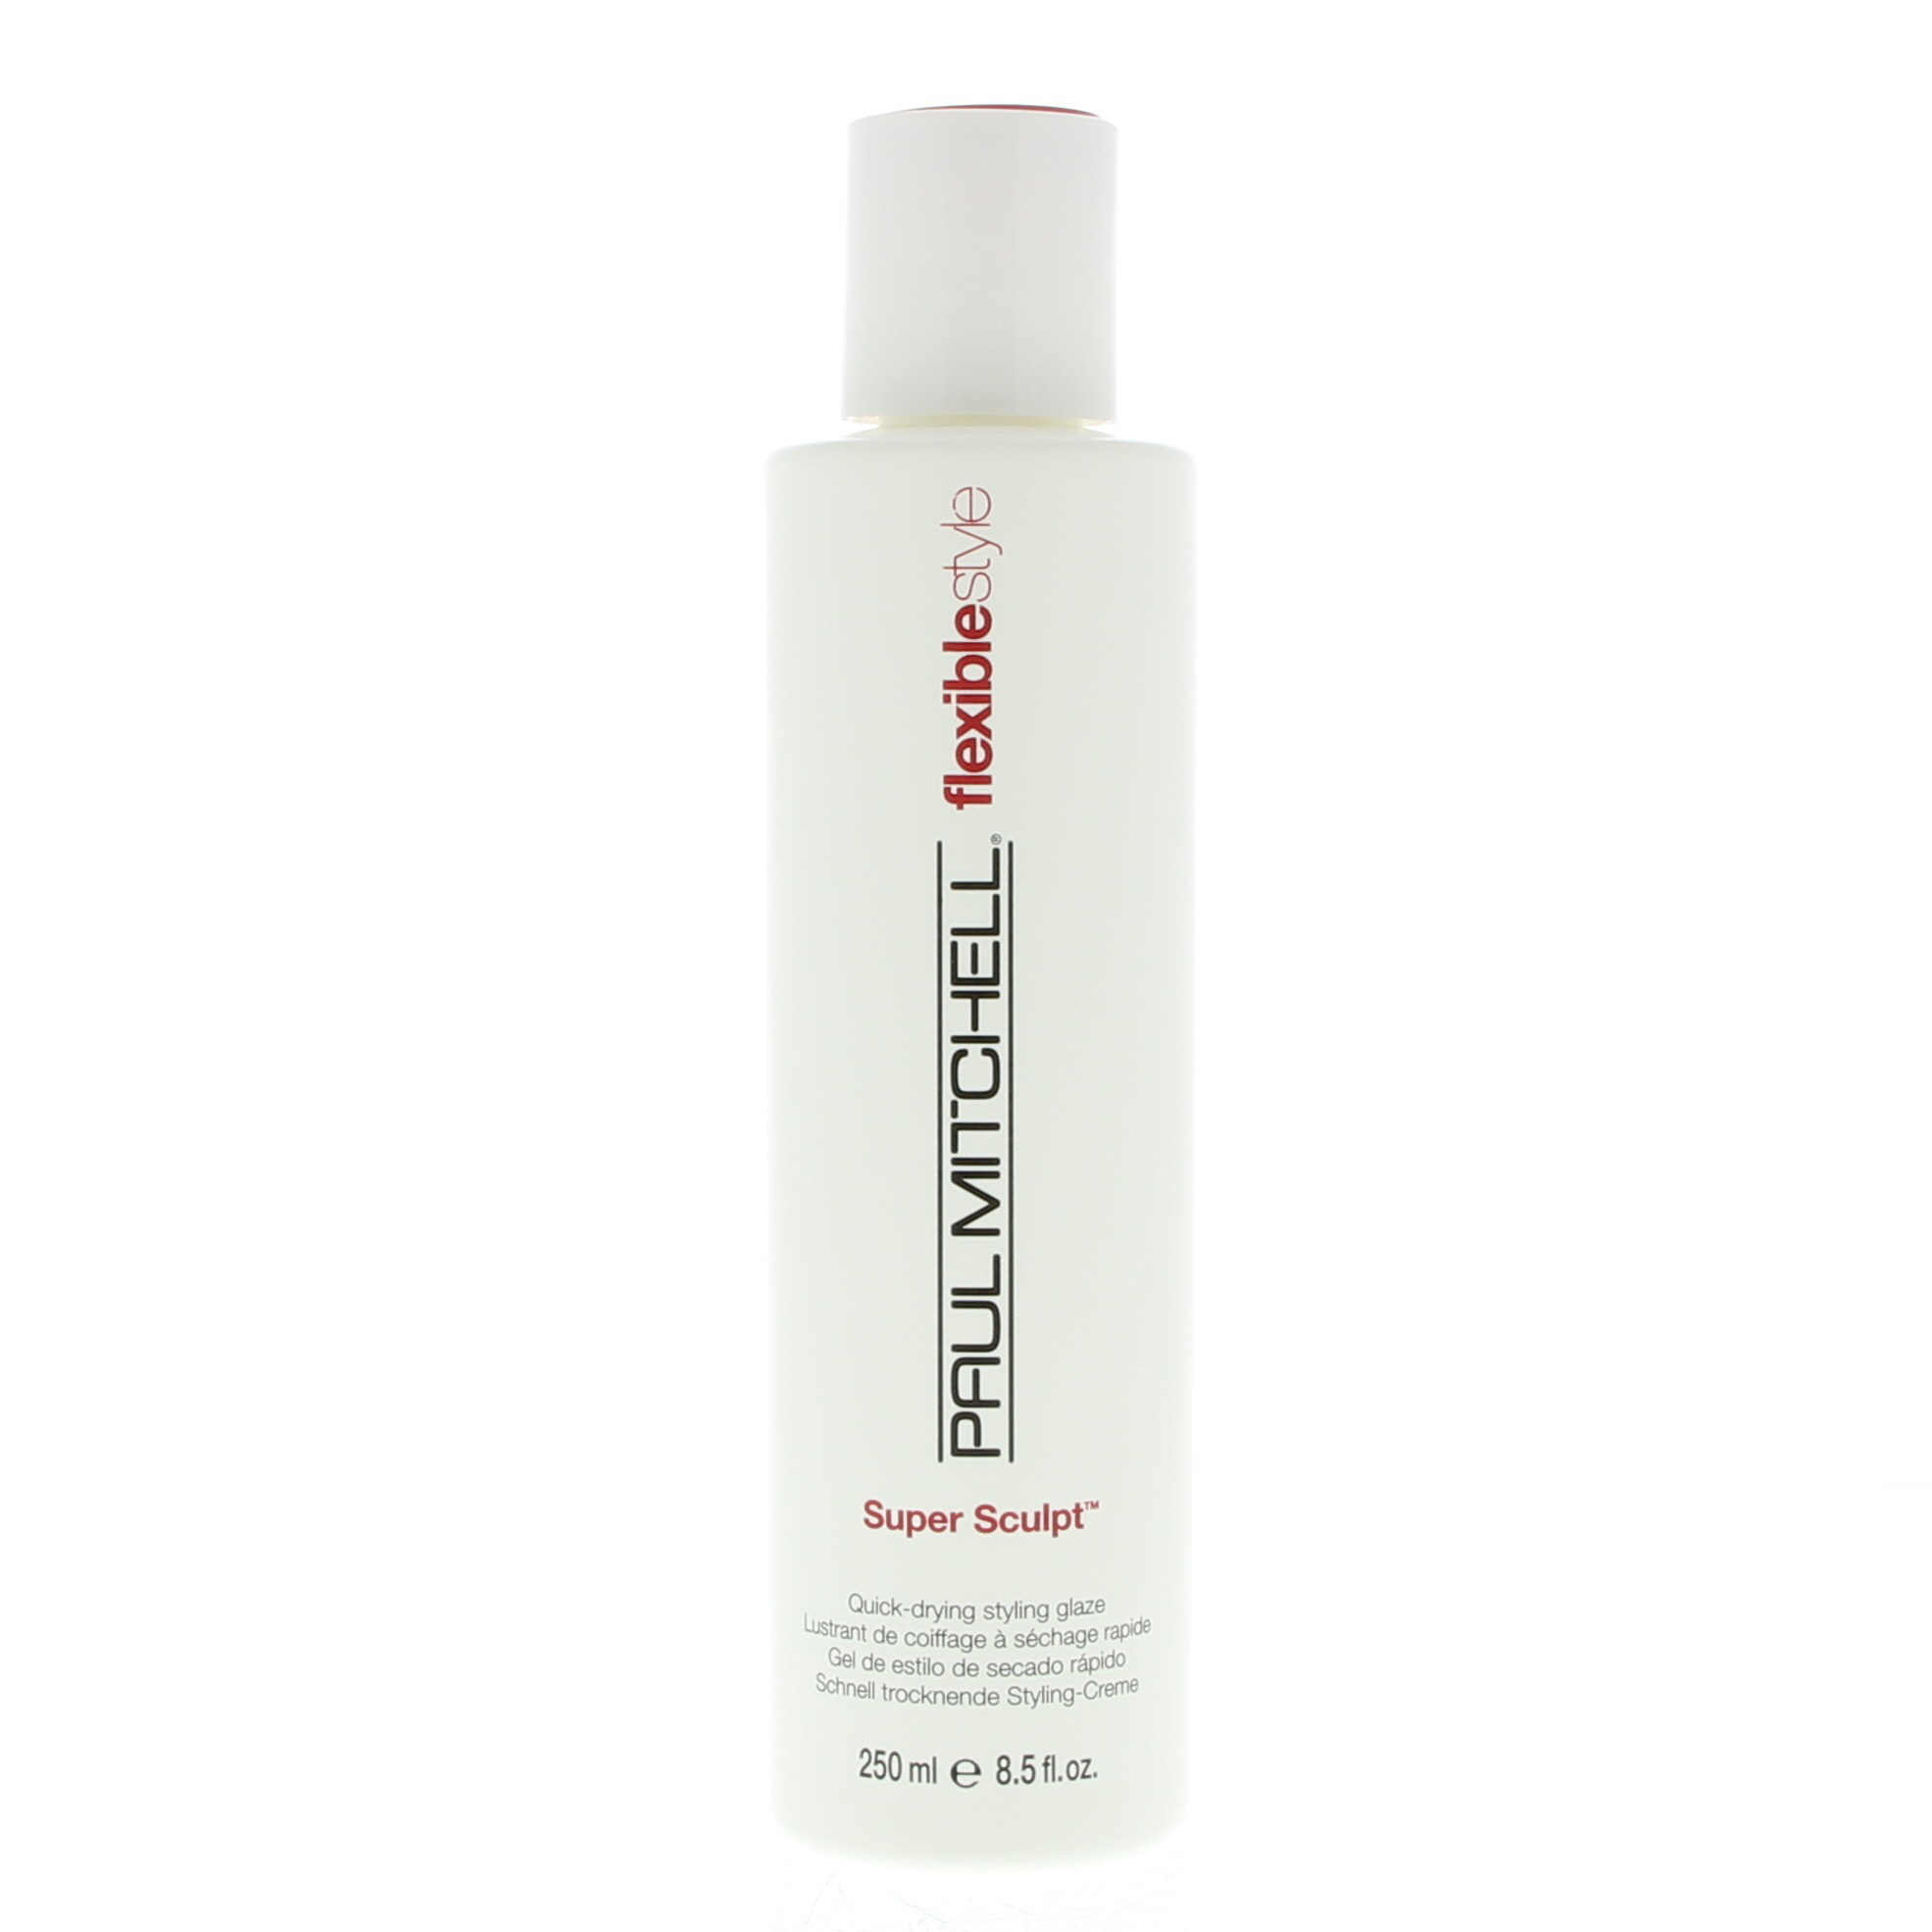 Paul Mitchell Flexible Style Super Sculpt Lotion Quick-drying Styling Glaze